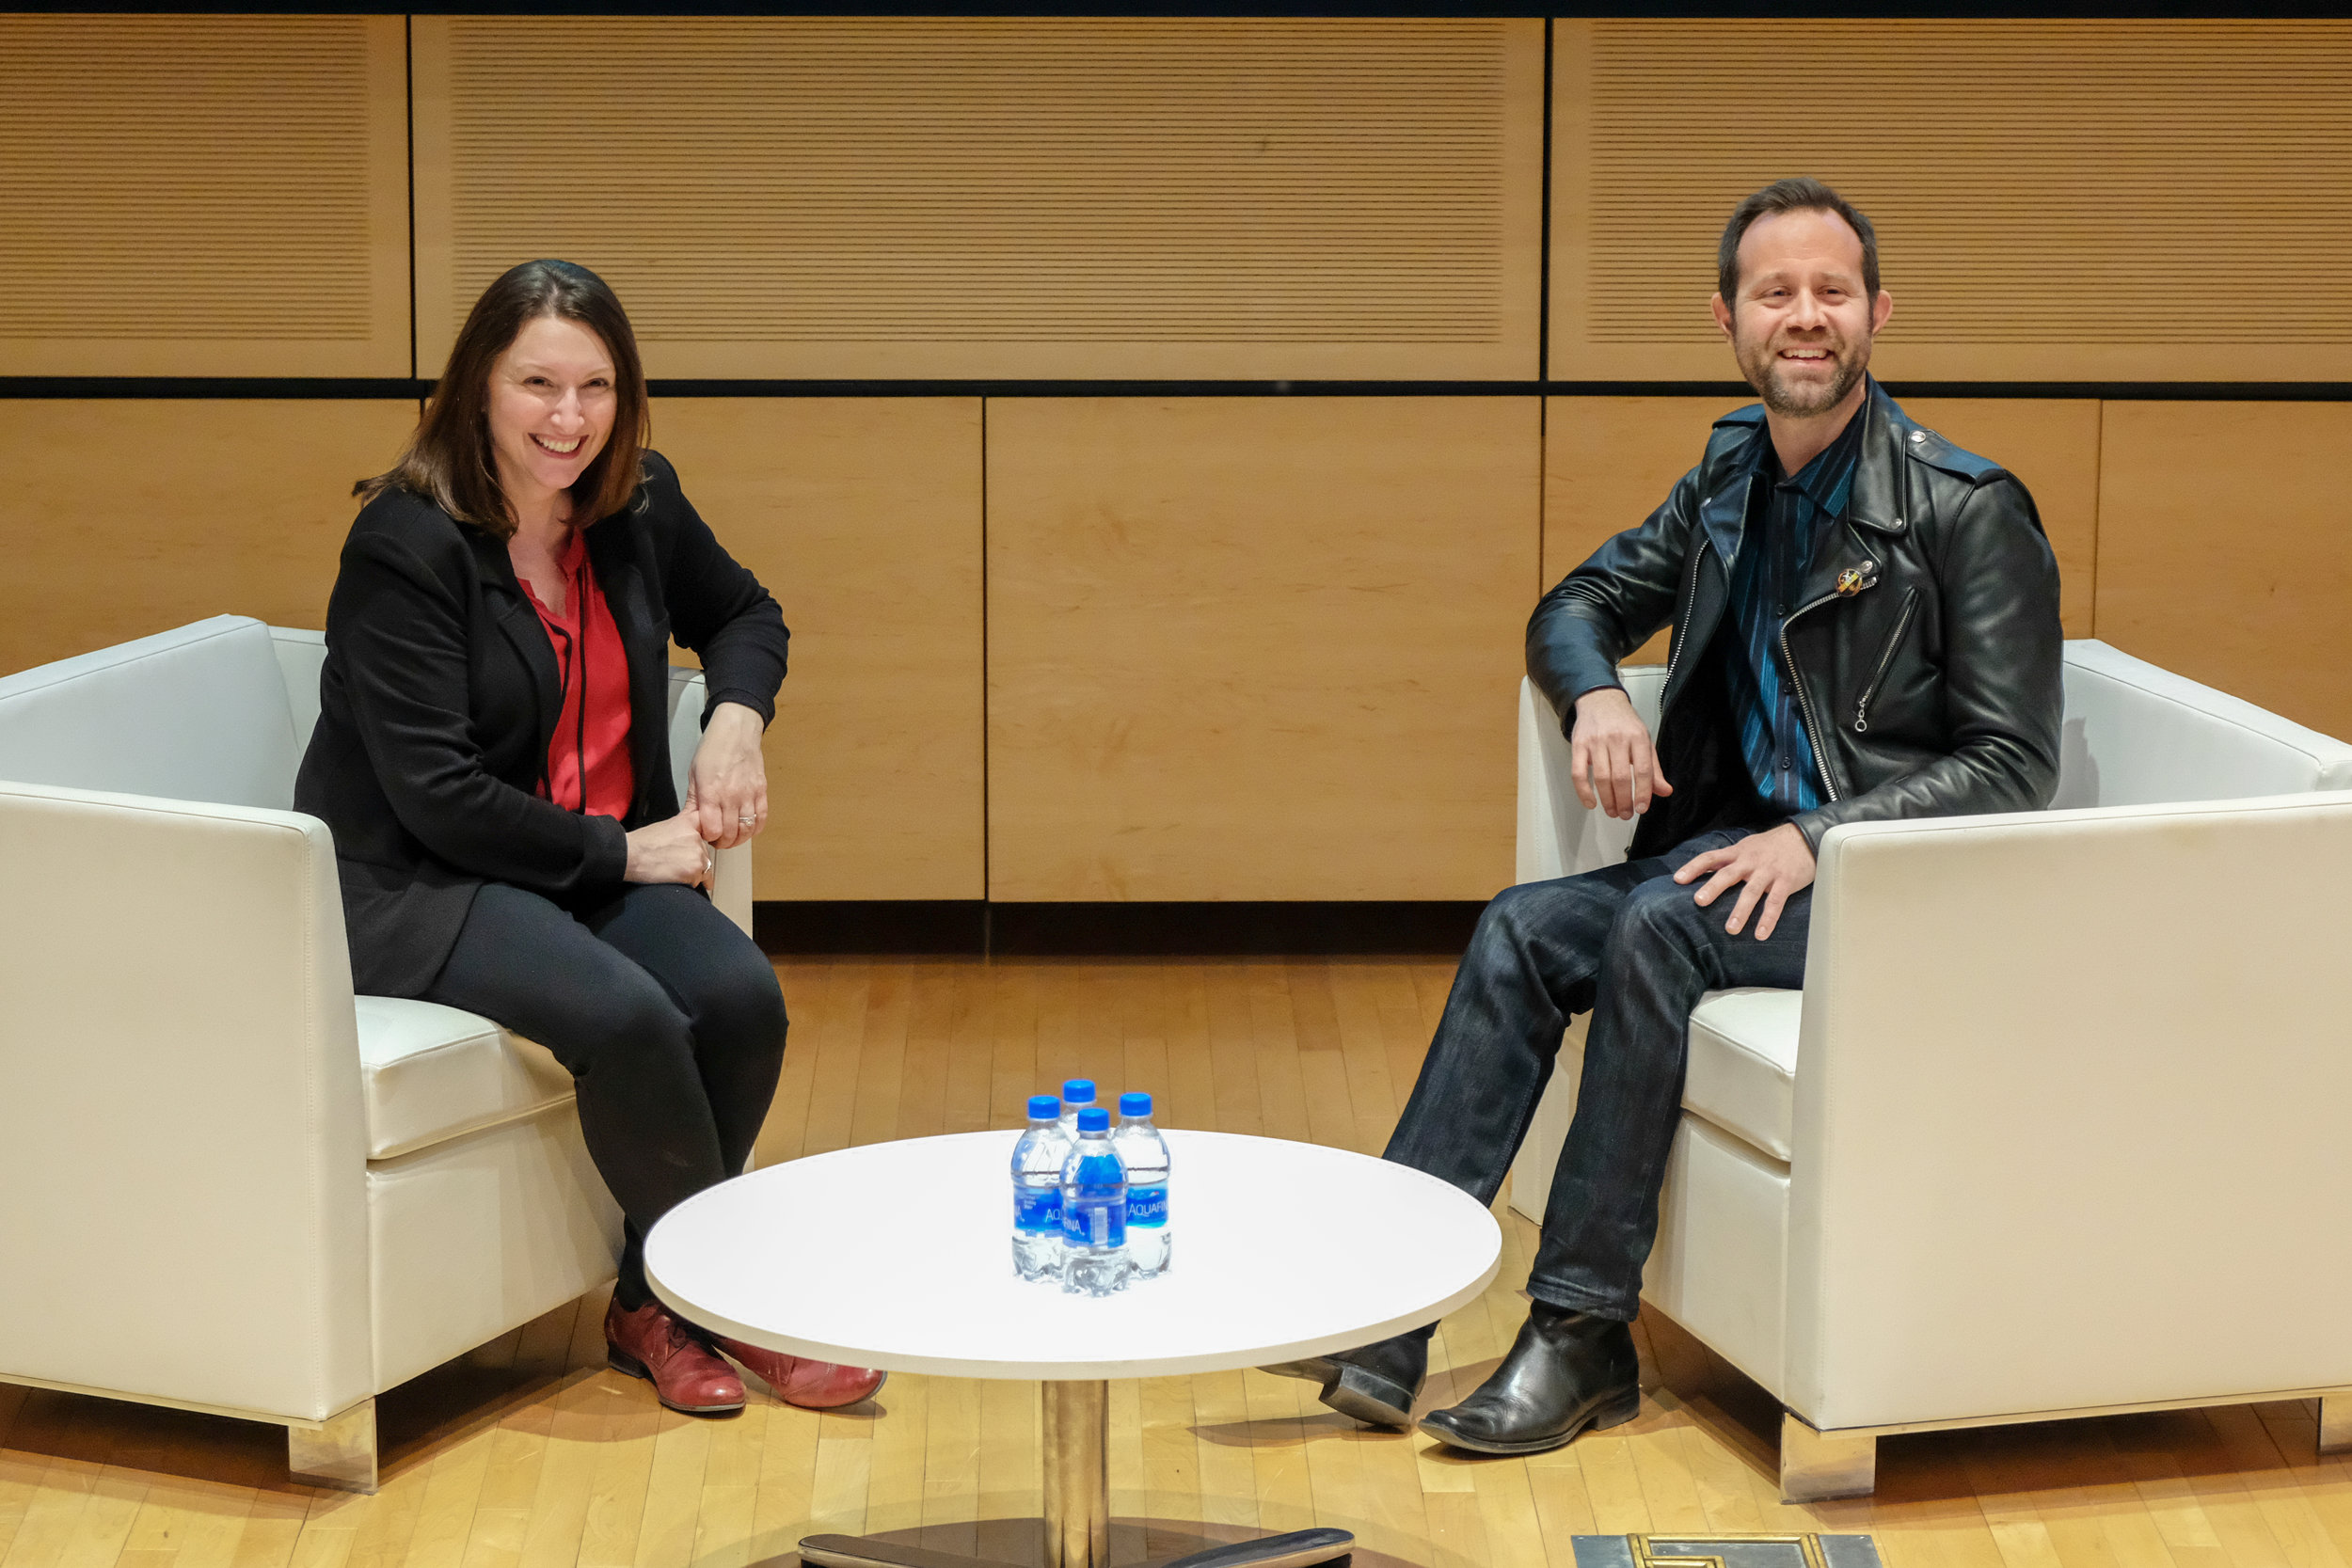 At Syracuse University in the Newhouse School's Herg Auditorium with Gina Luttrell, photo by Adam Ontiveros-Oberg